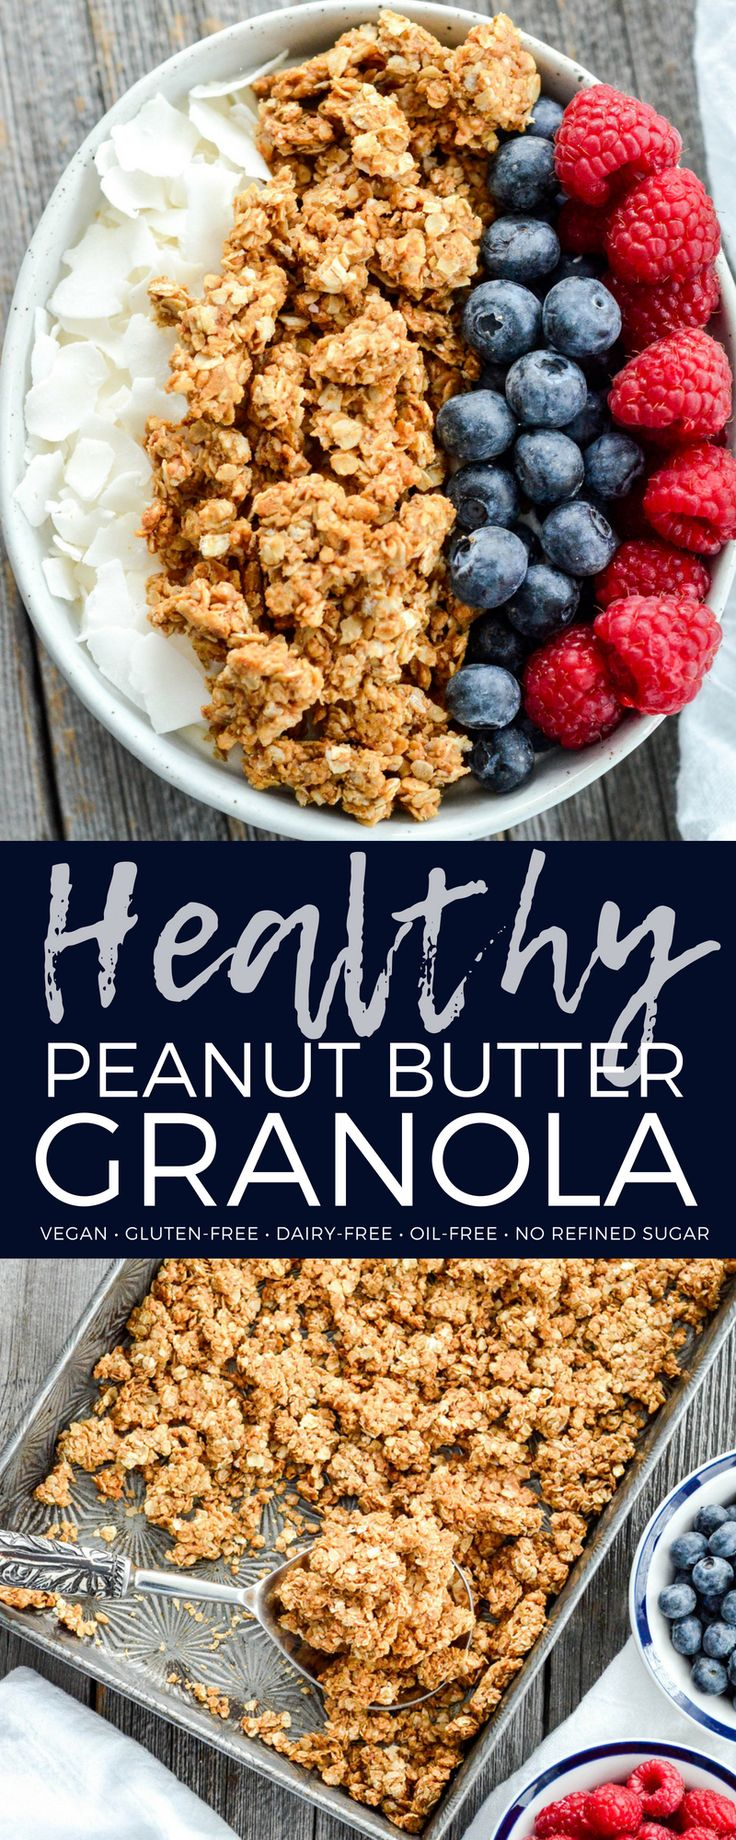 This Healthy Peanut Butter Granola is the perfect …